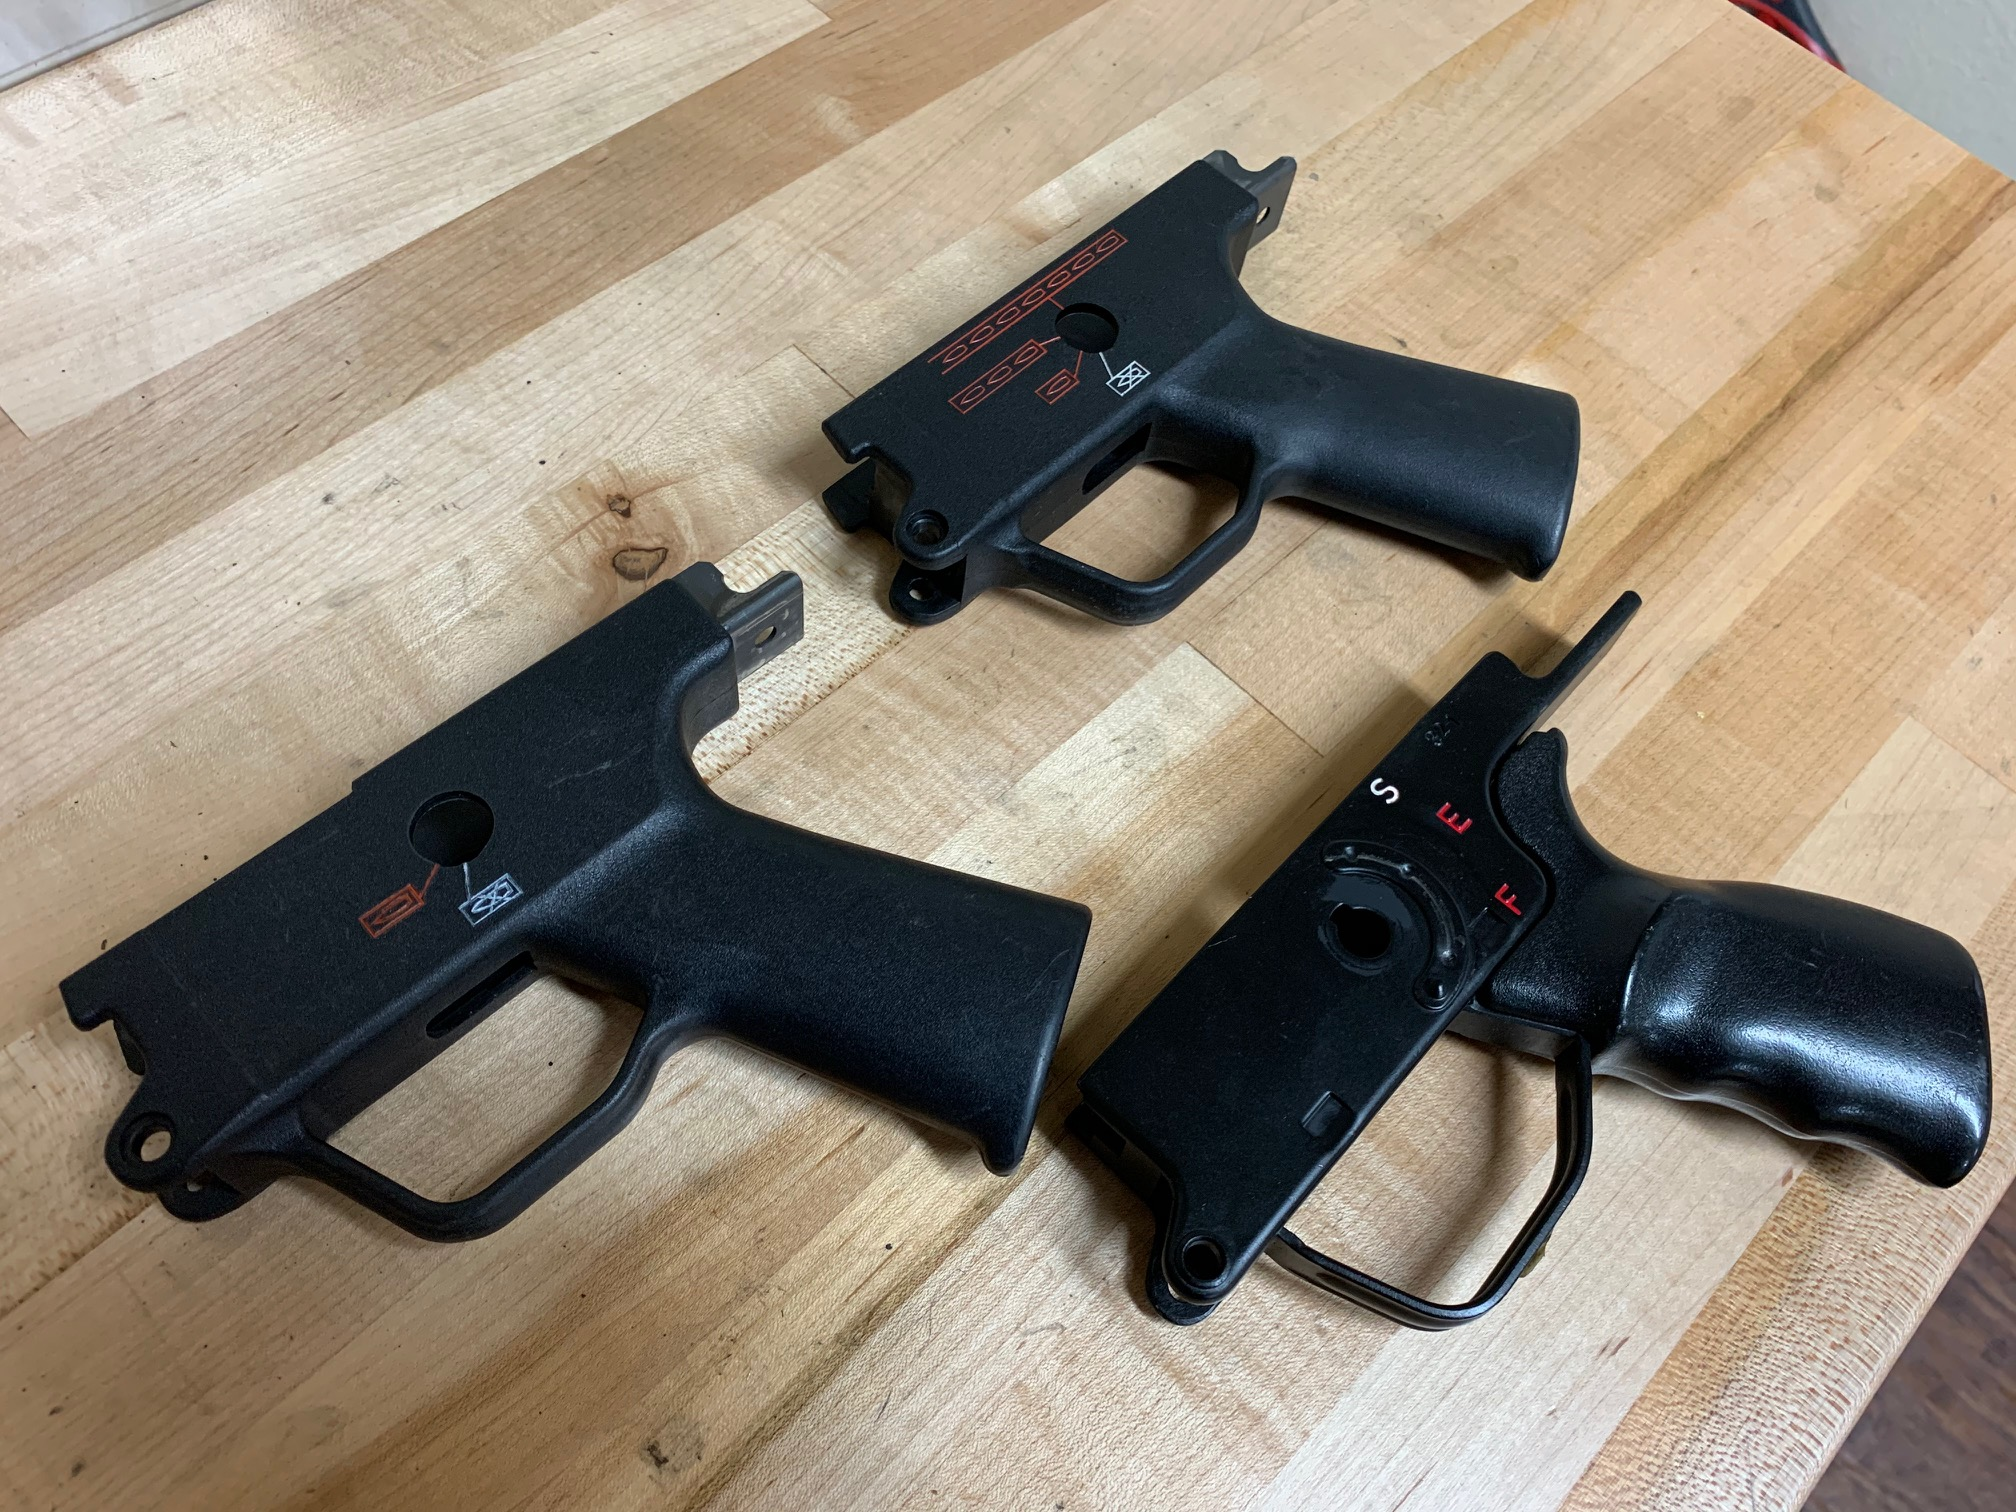 WTS: G36 magazines, MP5 carriers, trigger housings, stocks, pins, parts-img_0395.jpg